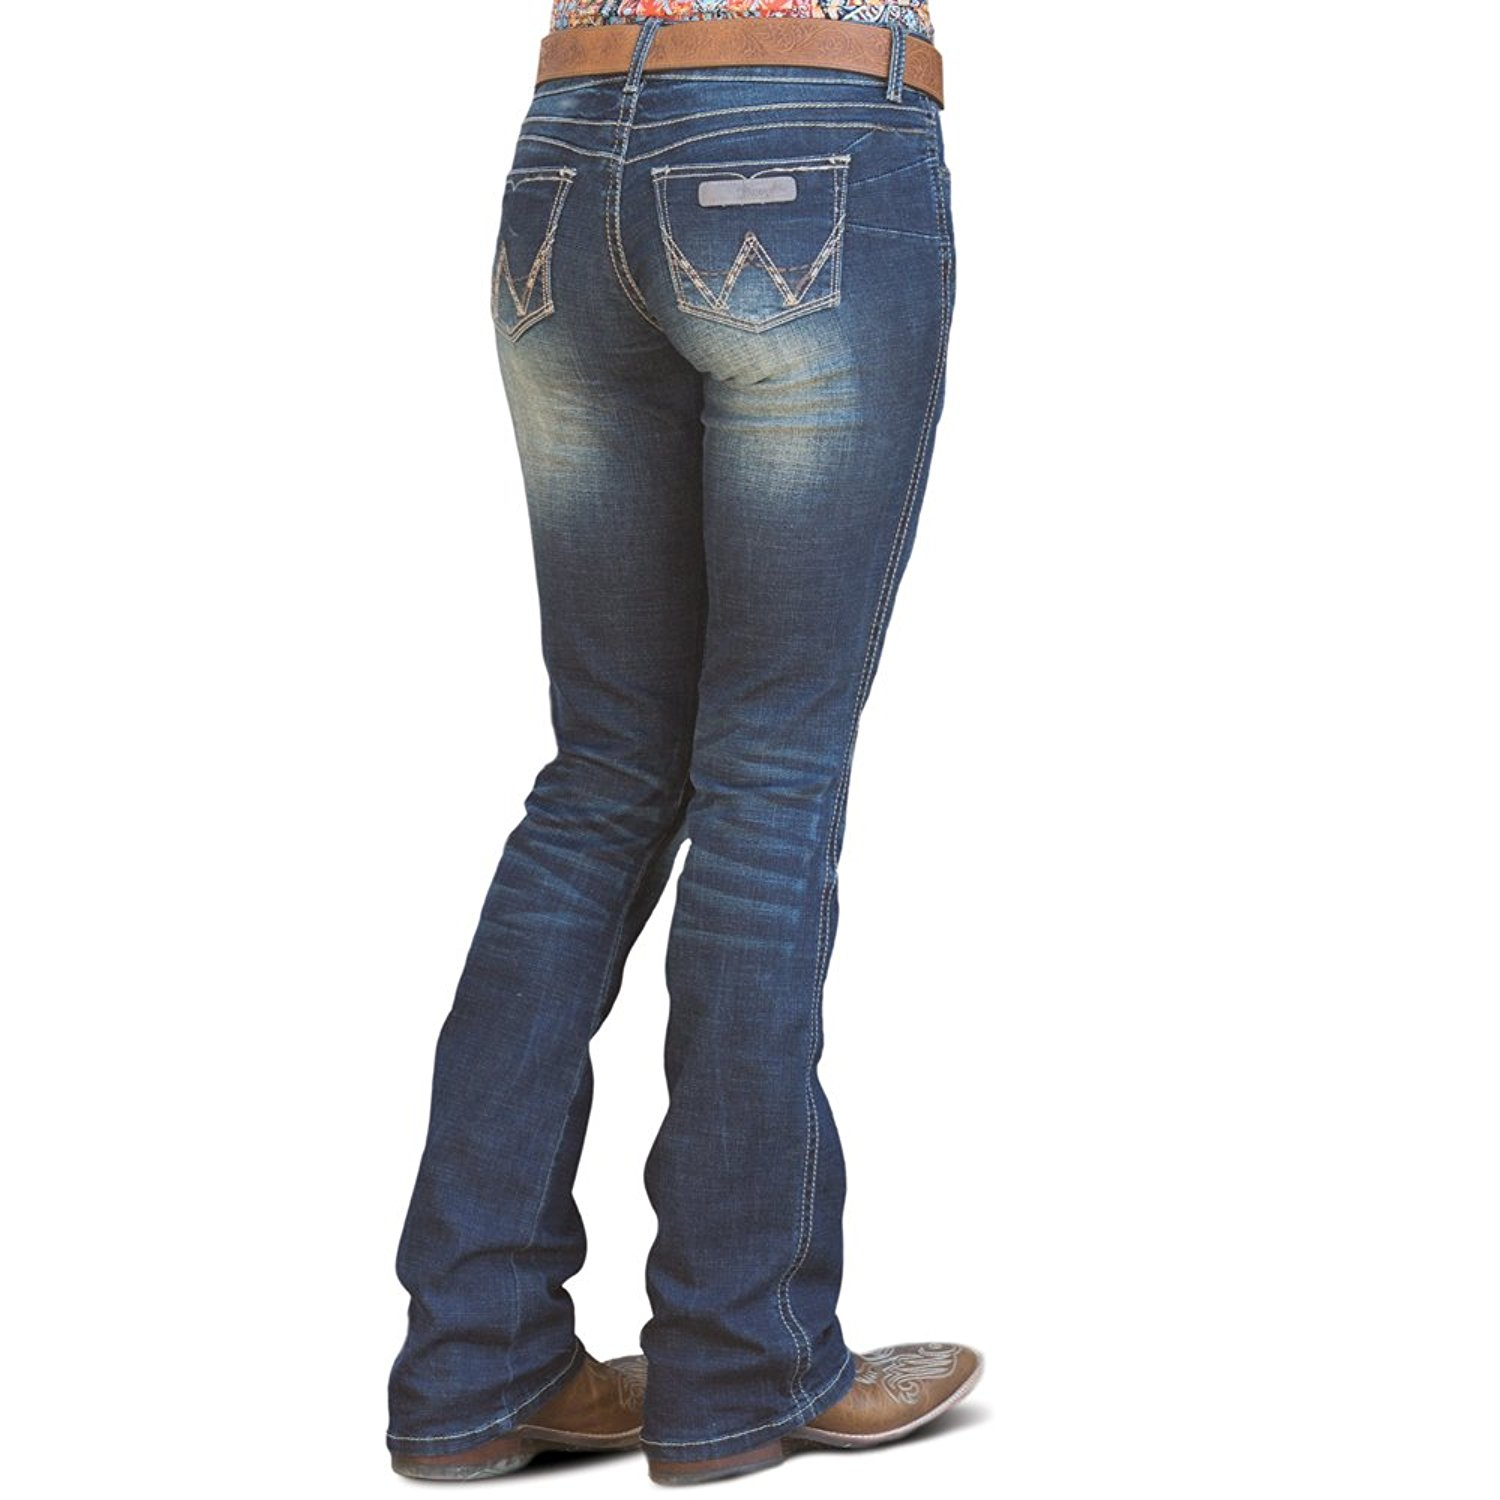 d358f1f0 Buy Wrangler Womens Premium Patch Booty Up Technology Sits Above Hip ...